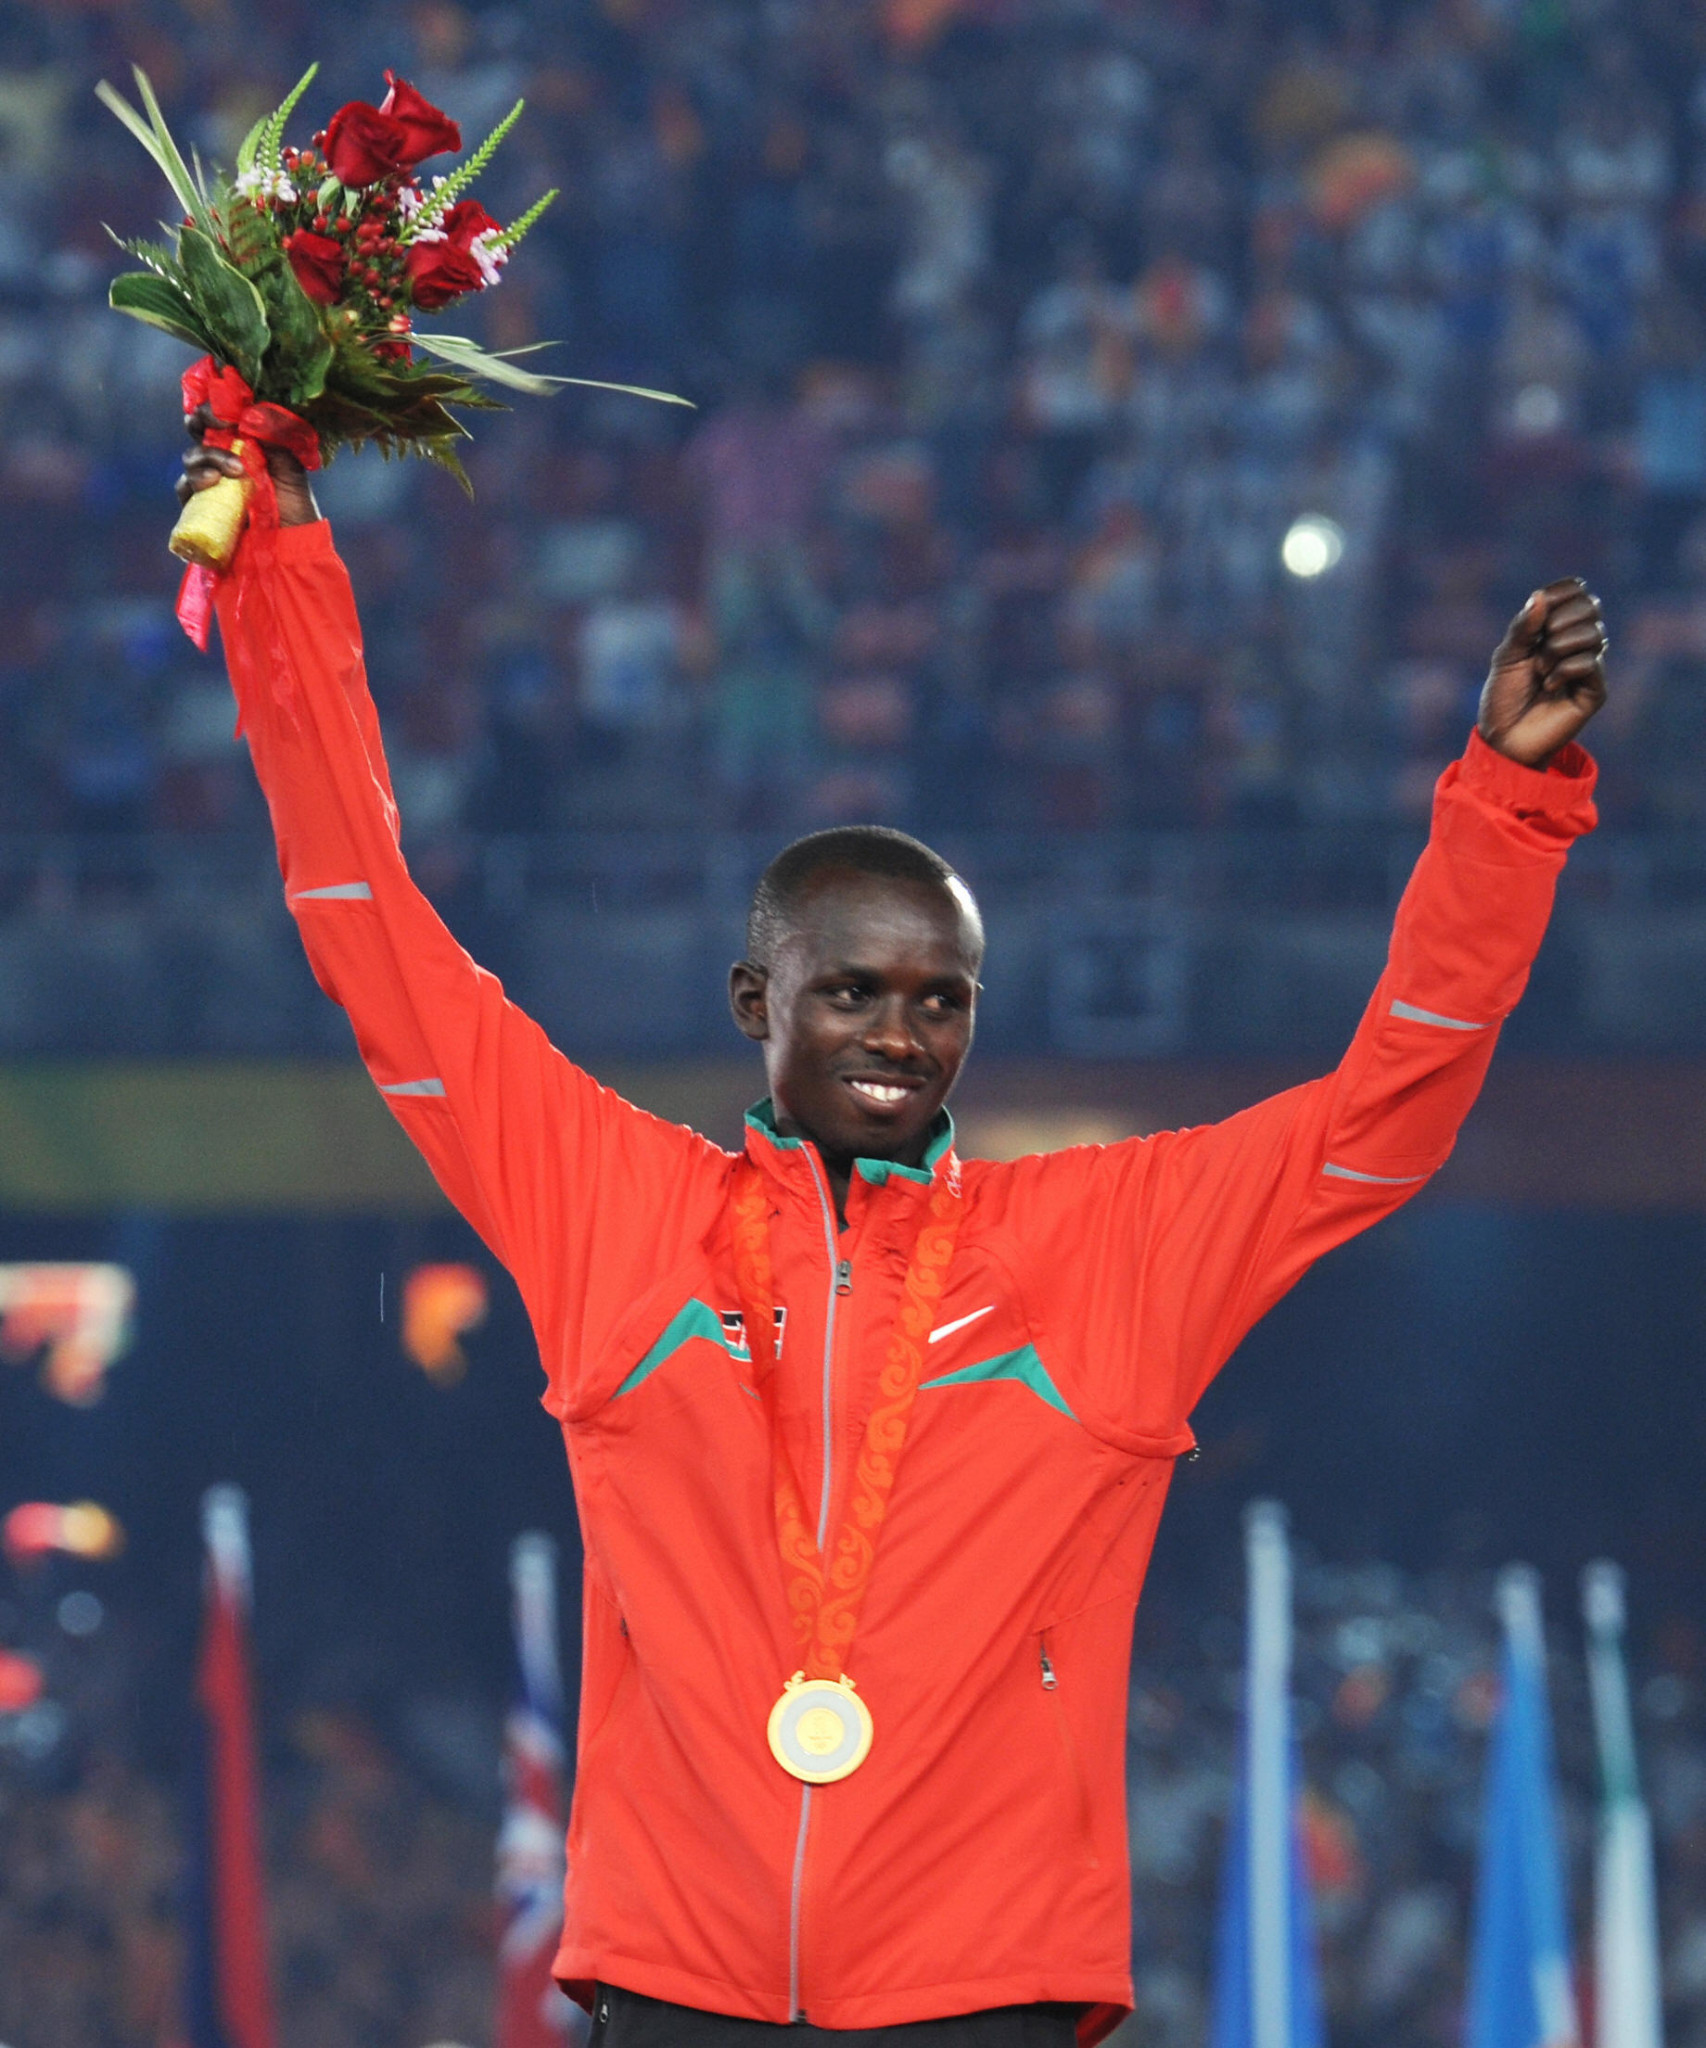 A 10 kilometre race in memory of 2008 Olympic marathon champion Samuel Wanjiru was reportedly stopped by police ©Getty Images